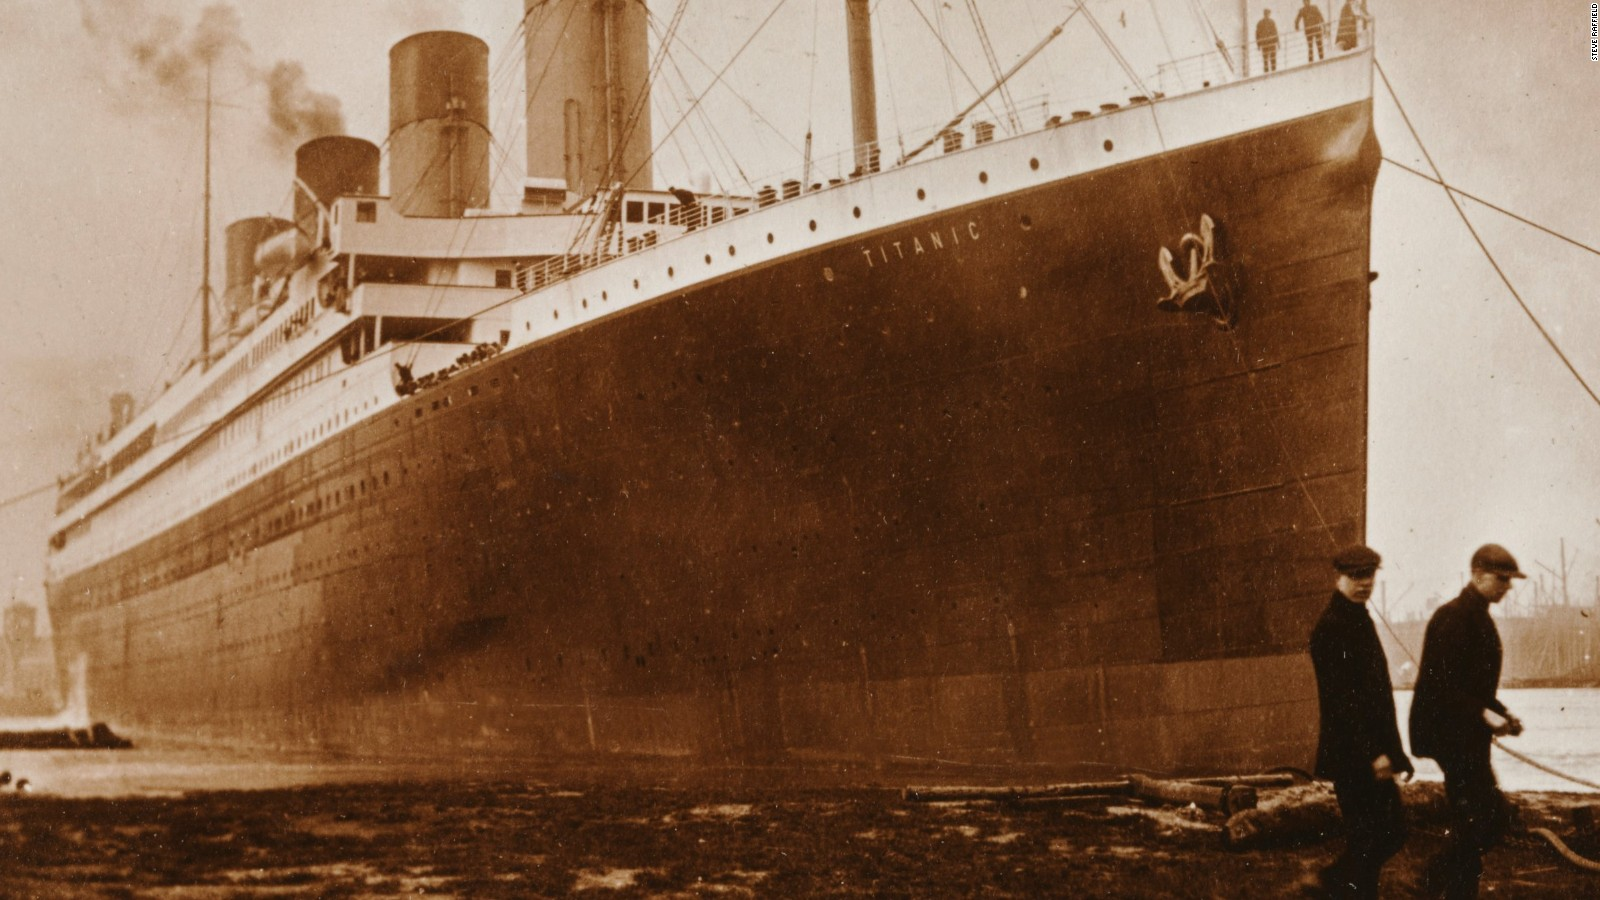 the details of events that led to the sinking of the titanic in 1912 The sinking of titanic detailed information about the sinking of the titanic on april 15, 1912 the timeline of events that led to the titanic's sinking on.